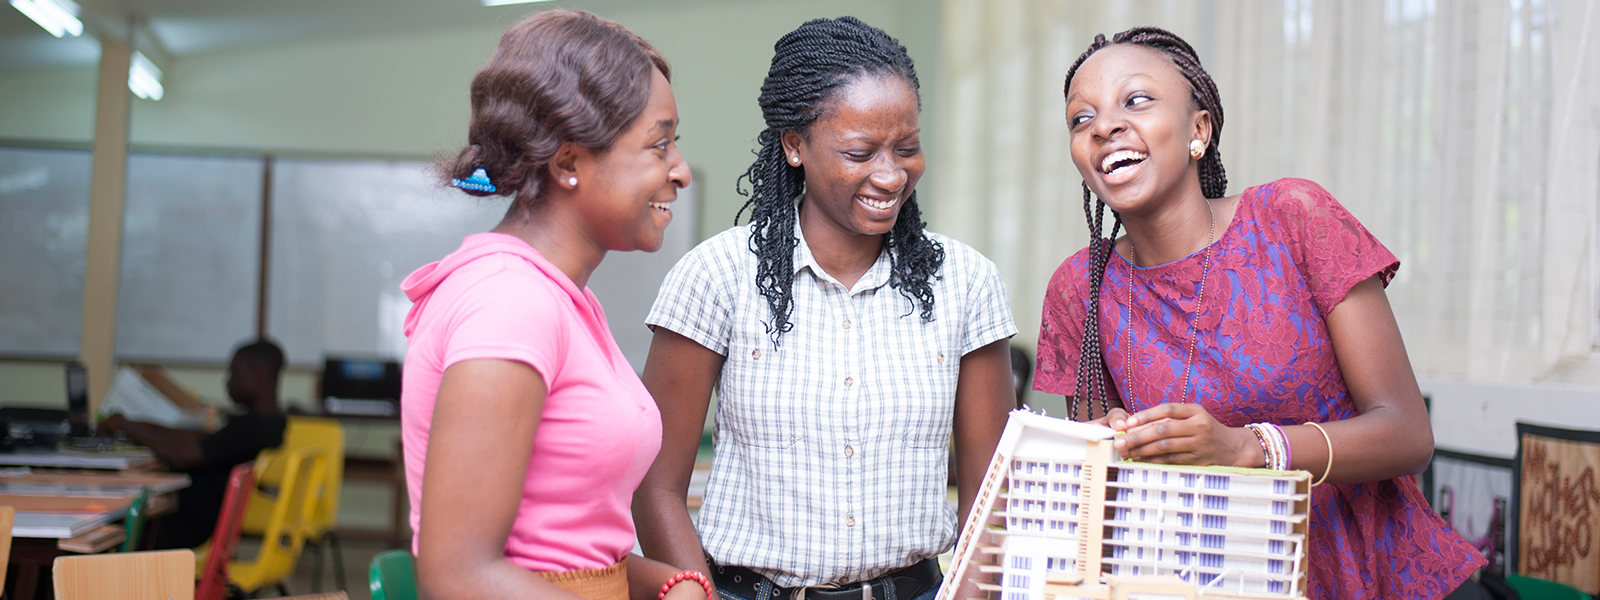 Admissions 2019/2020 Academic Year